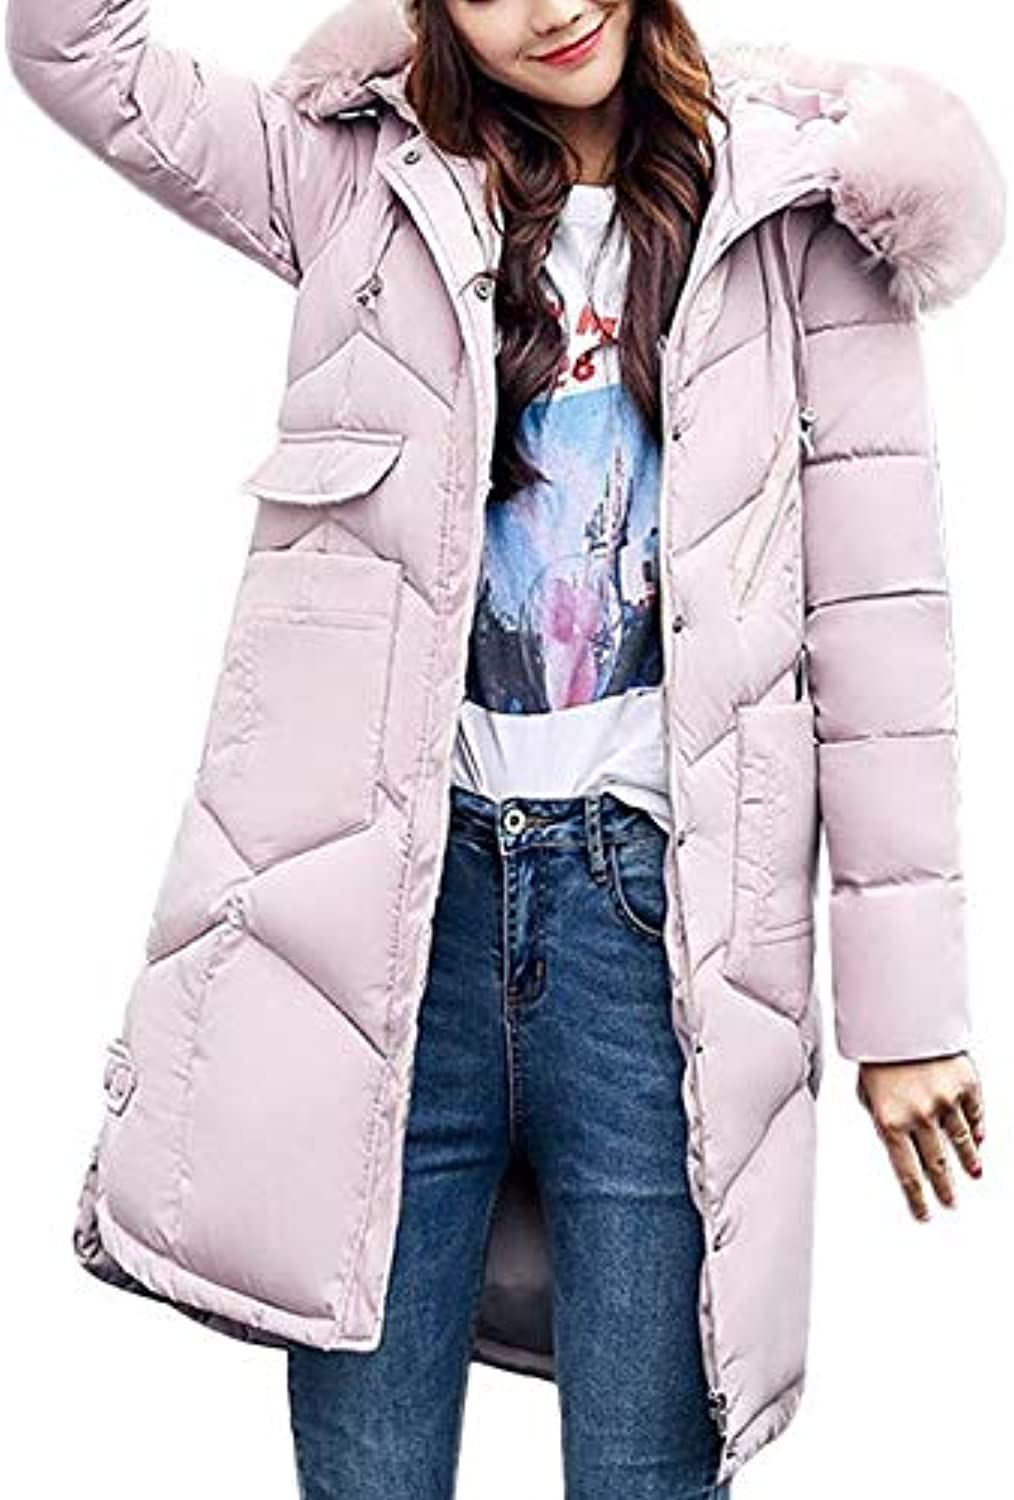 Women Outerwear Winter Snow Keep Warm Casual Daily Leisure Pink Tunic Wild Zipper Fur Hooded Coat Long Cotton Padded Jacket Pocket Coats with Hat (color   red, Size   3XL)